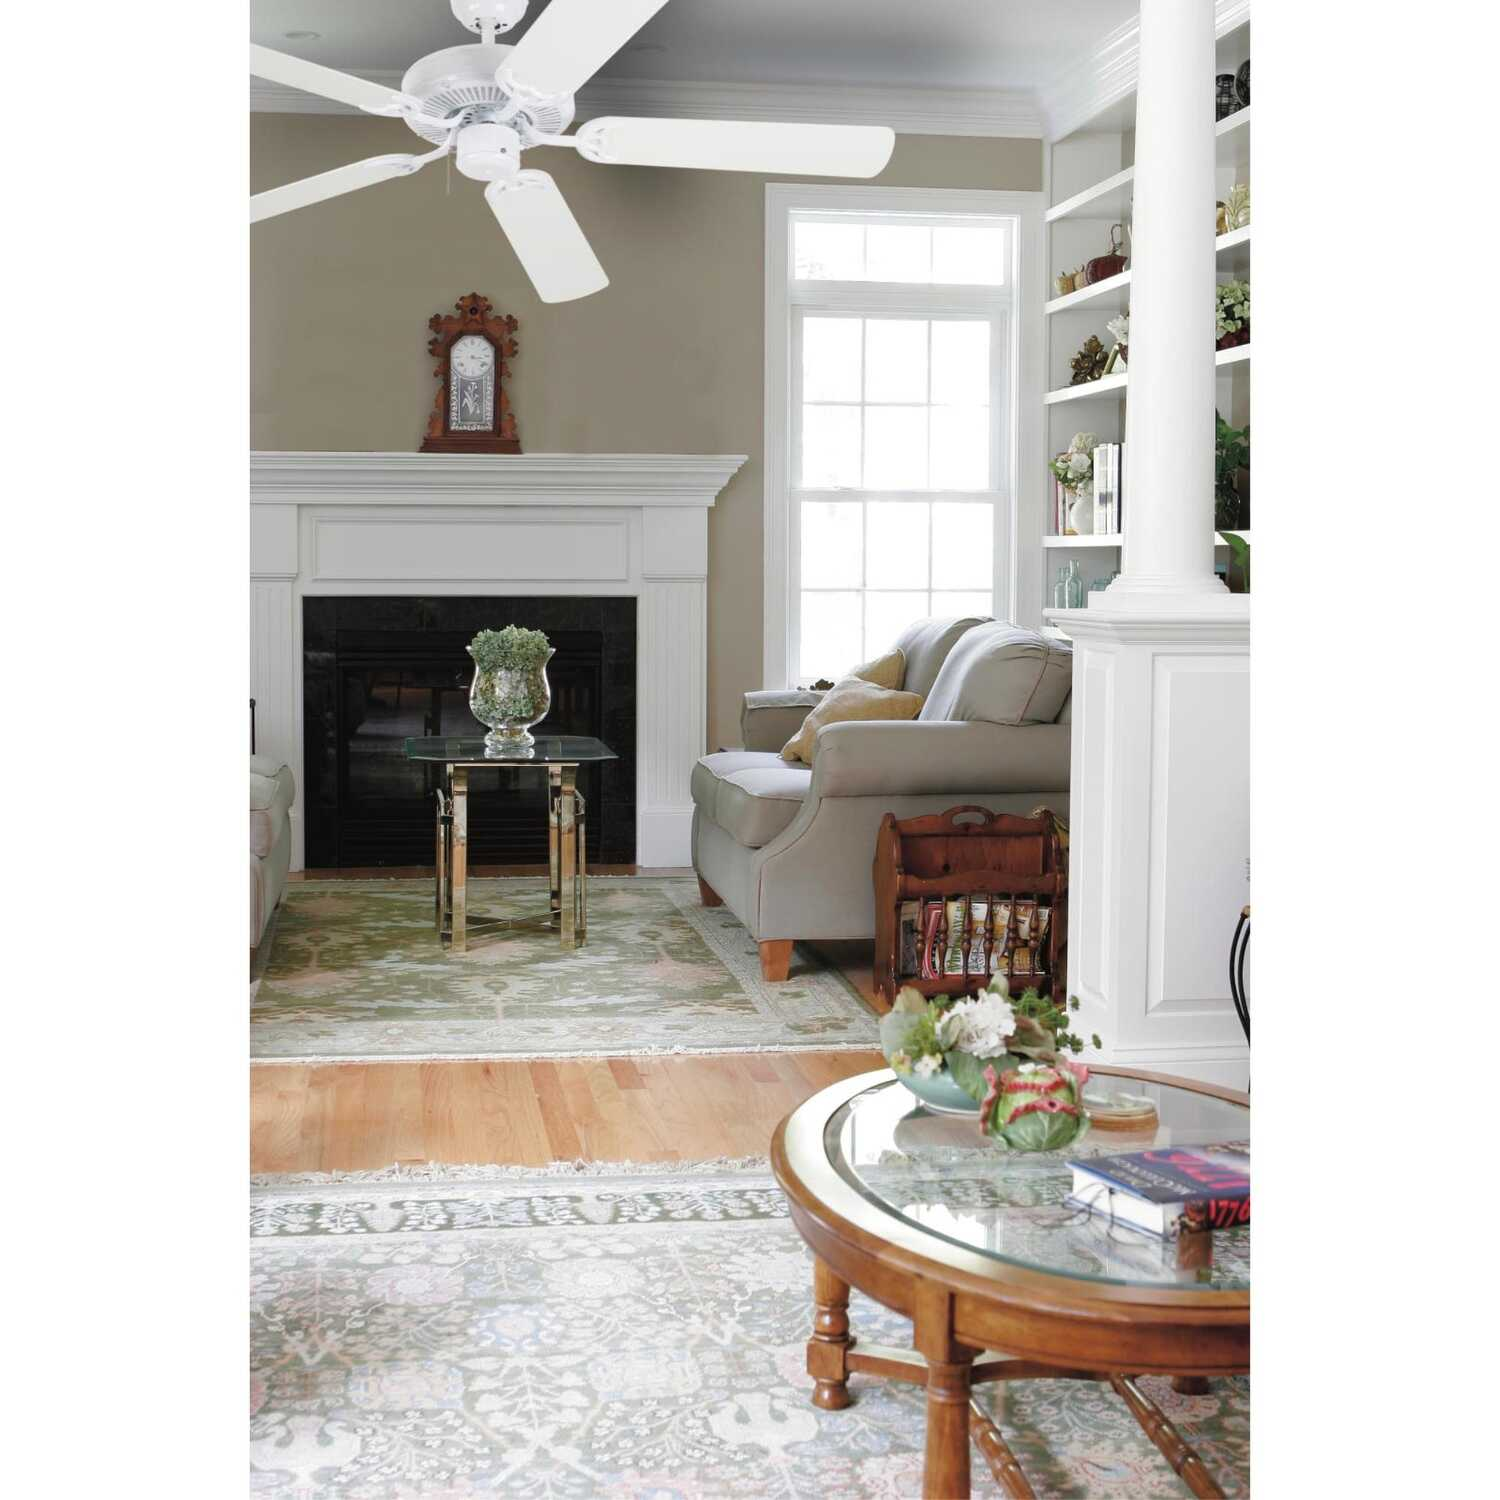 Westinghouse  Contractor's Choice  52 in. 5 blade Indoor  Antique White  Ceiling Fan